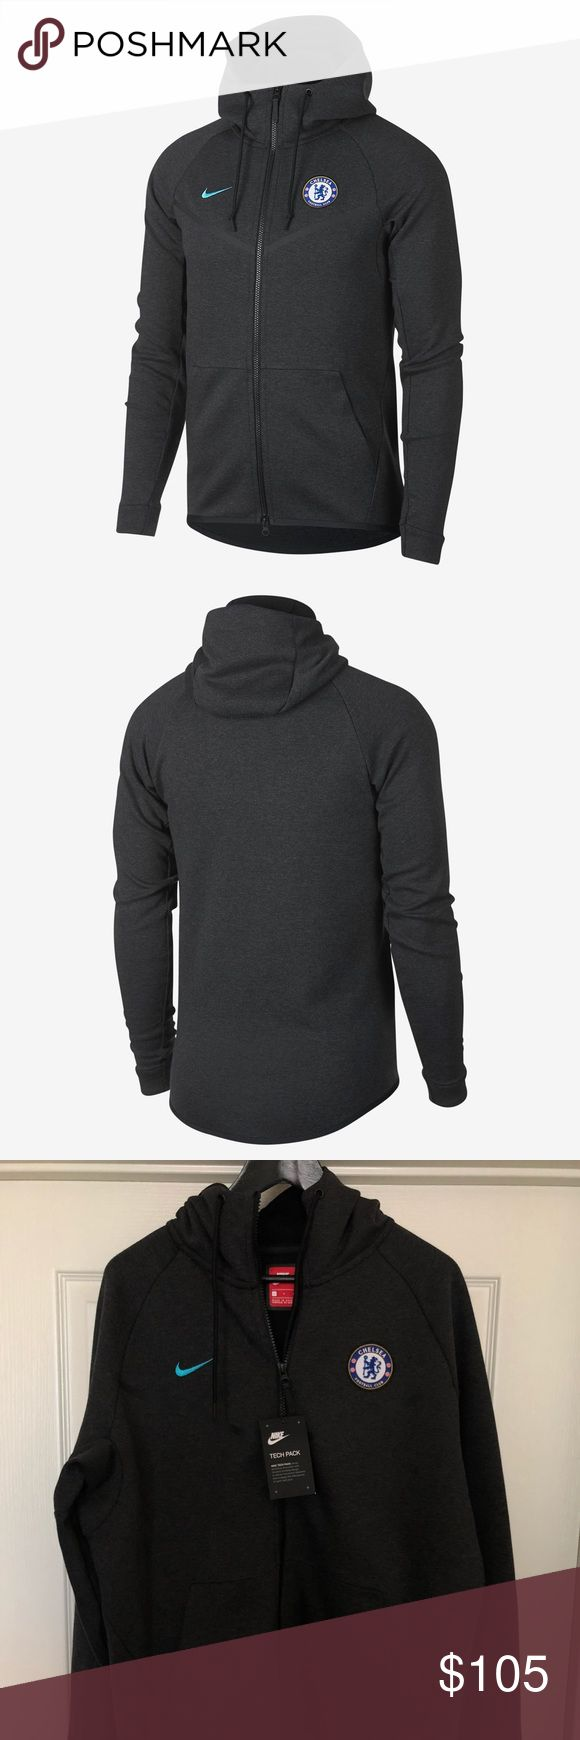 MENS NIKE CHELSEA FC TECH FLEECE WINDRUNNER | NEW ☑️ Item is brand with tags.        ✔️ Style: AA1928 (Windrunner Jacet)       ✔️ Color Code: 036 (Black Heather)       ✔️ Retail: $145       ✔️ Fabric: 66% Cotton | 34% Polyester   ☑️ Will ship out within 24 hours.  ❌ No transactions outside of Posh  🔘 All my inventory in posh comes from my eBay store page, (cross listed) so prices are competitive with that platform as well.  🔘 Stores.ebay.com/premiumlacesthreads Nike Jackets & Coats